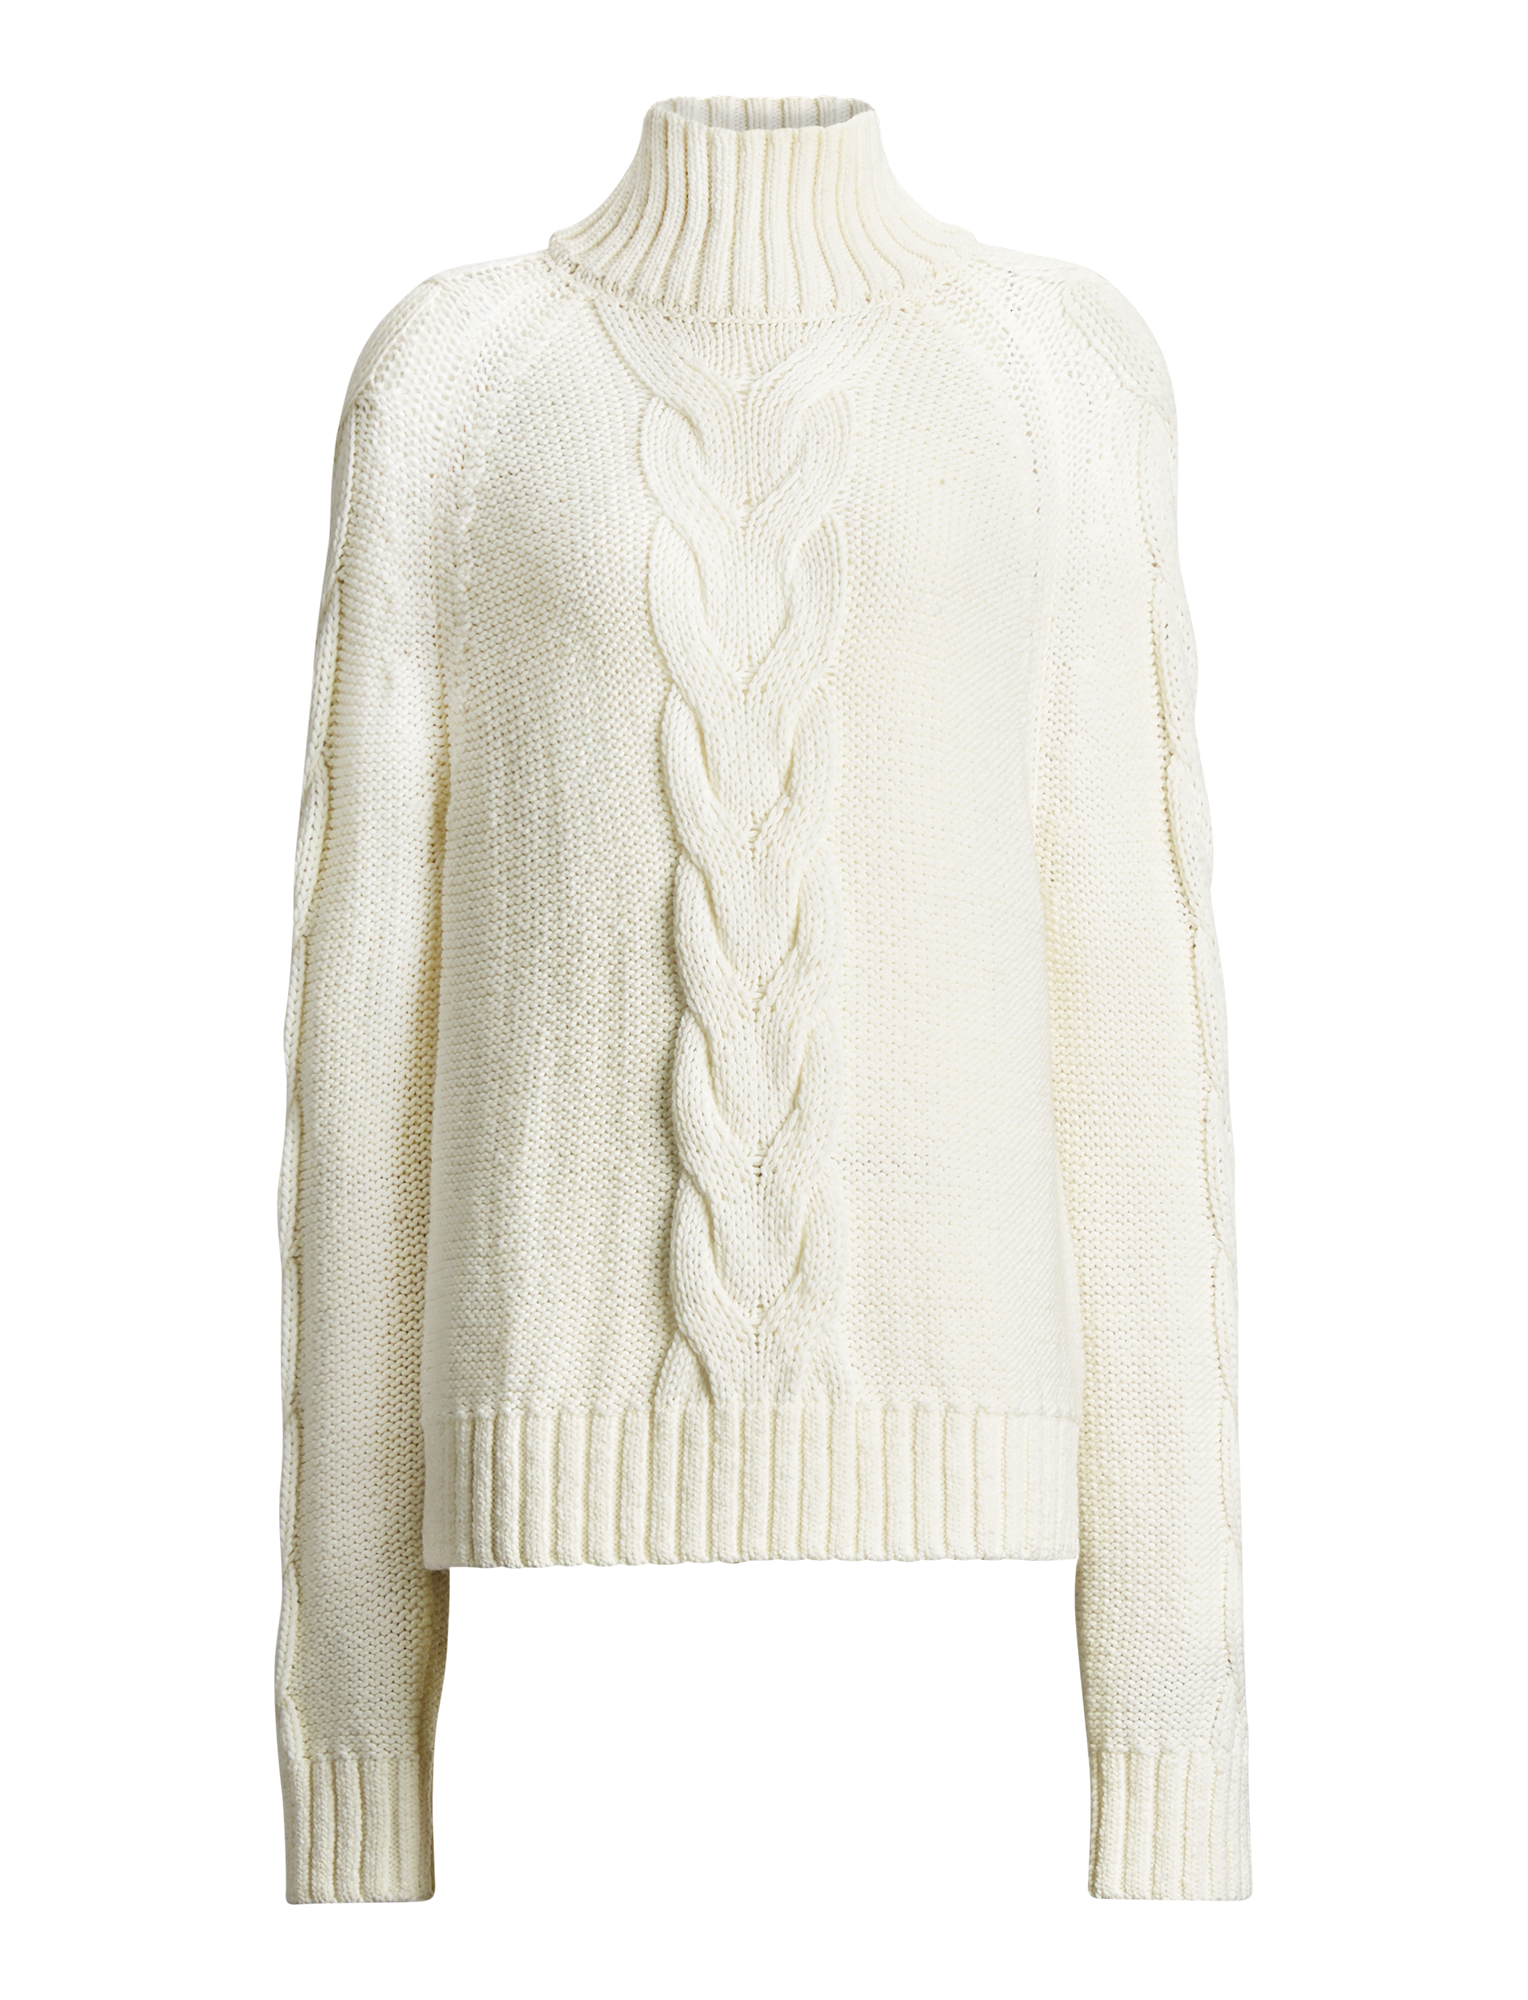 Joseph, High Neck Chunky Cable Knit Sweater, in ECRU